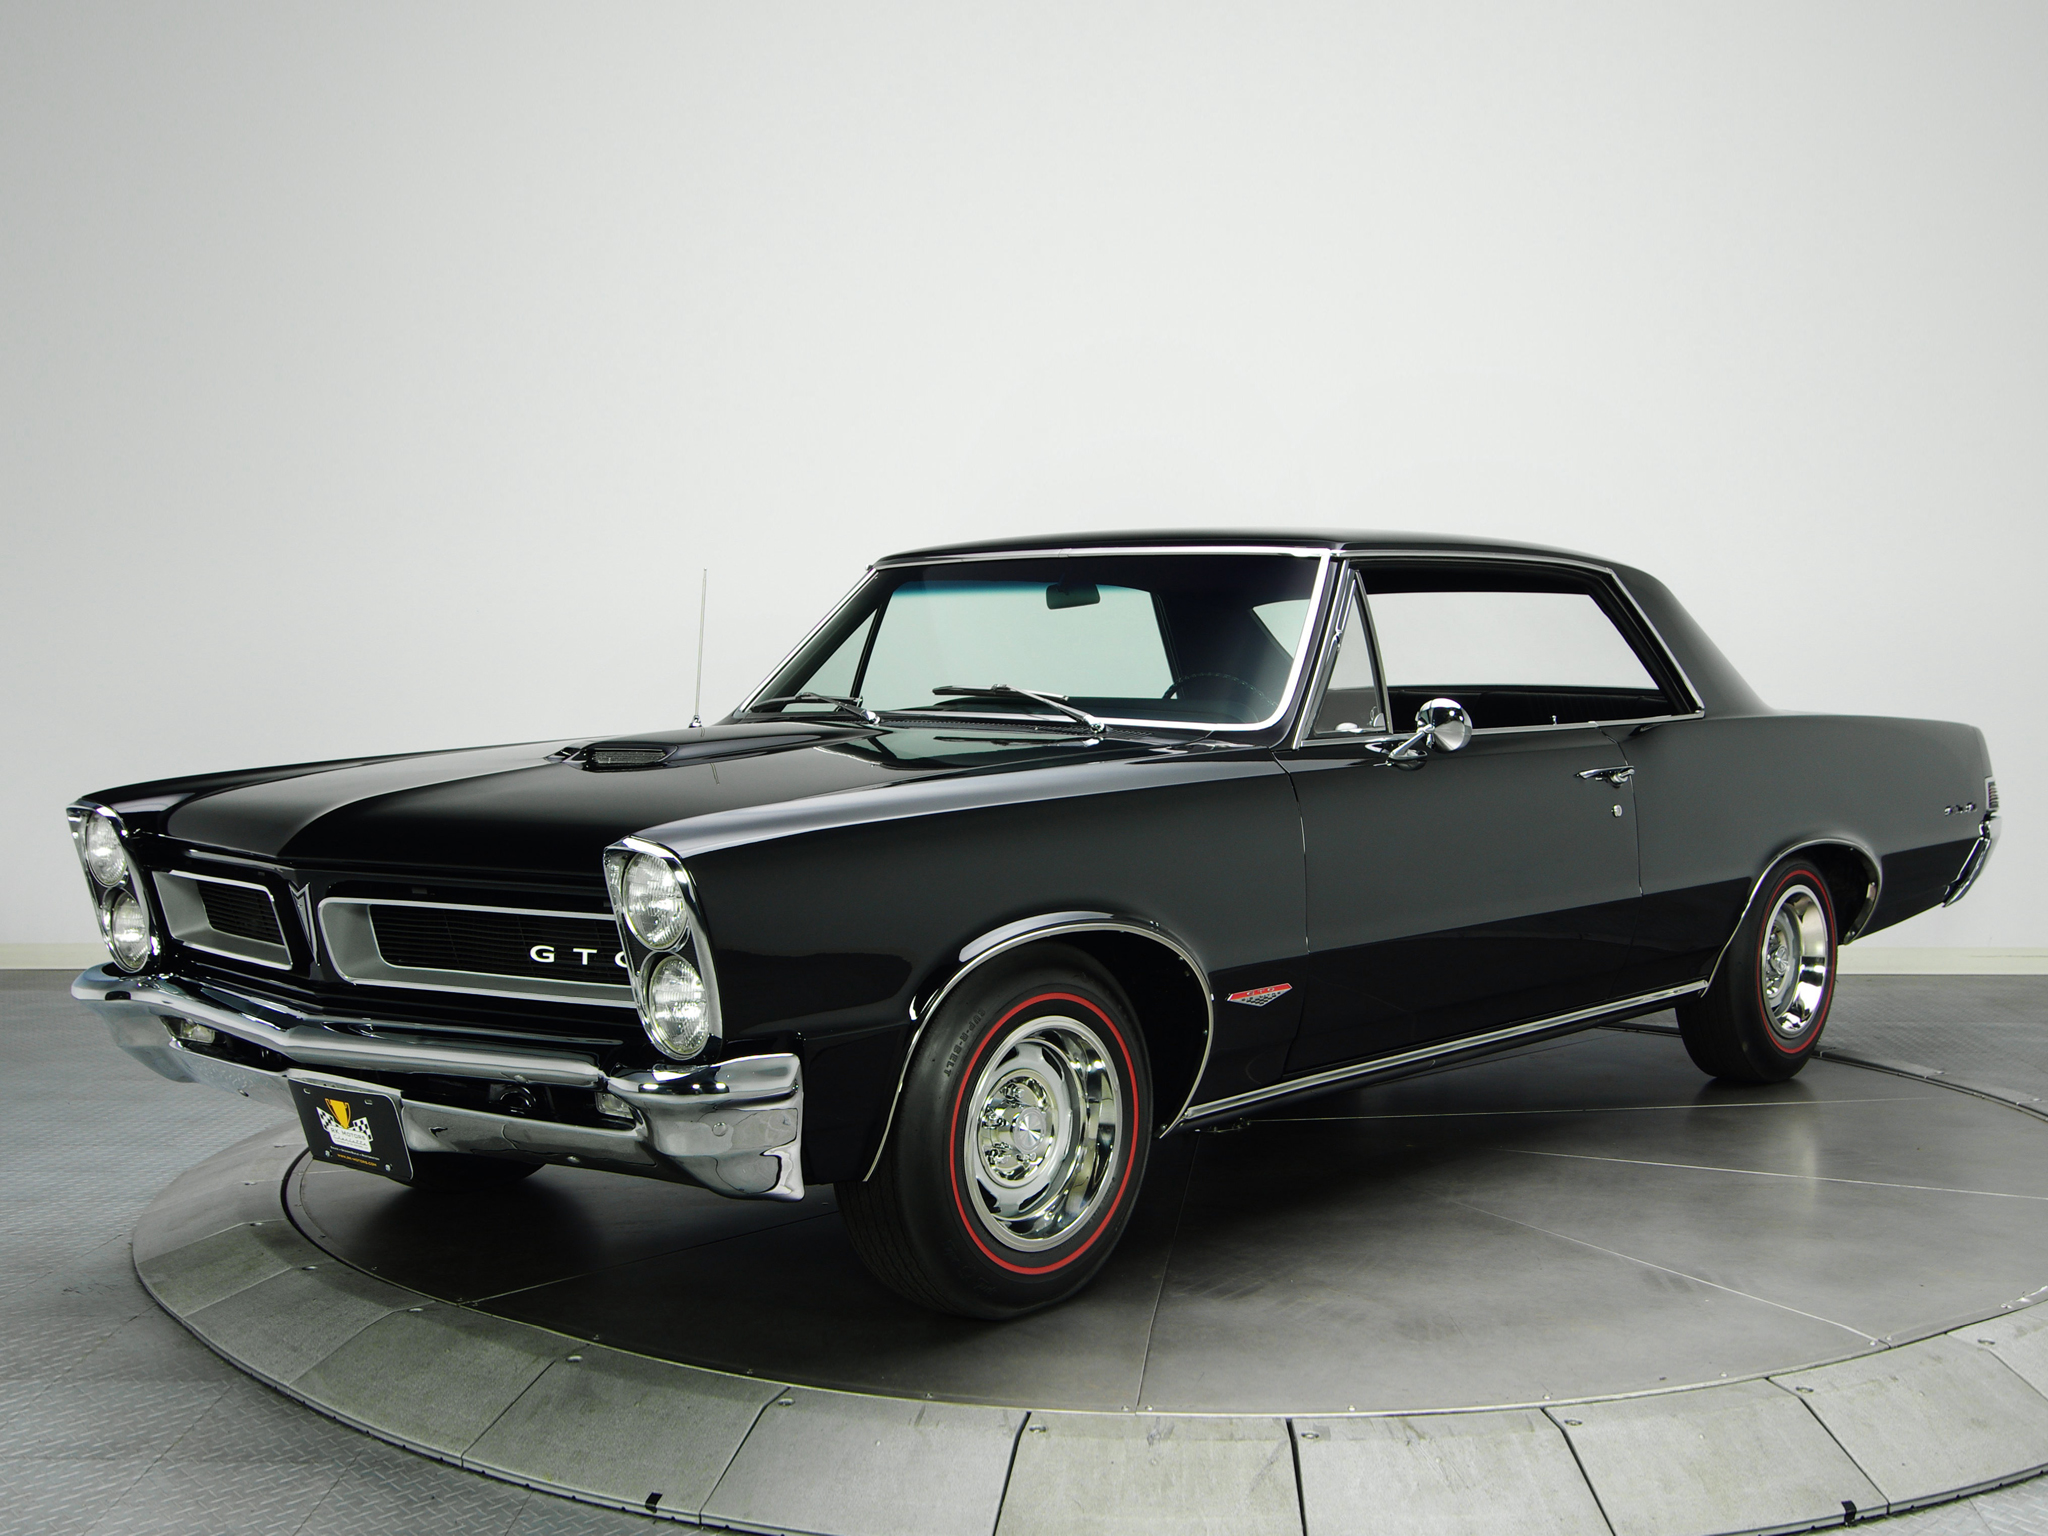 pontiac gto related images start 100 weili automotive network. Black Bedroom Furniture Sets. Home Design Ideas